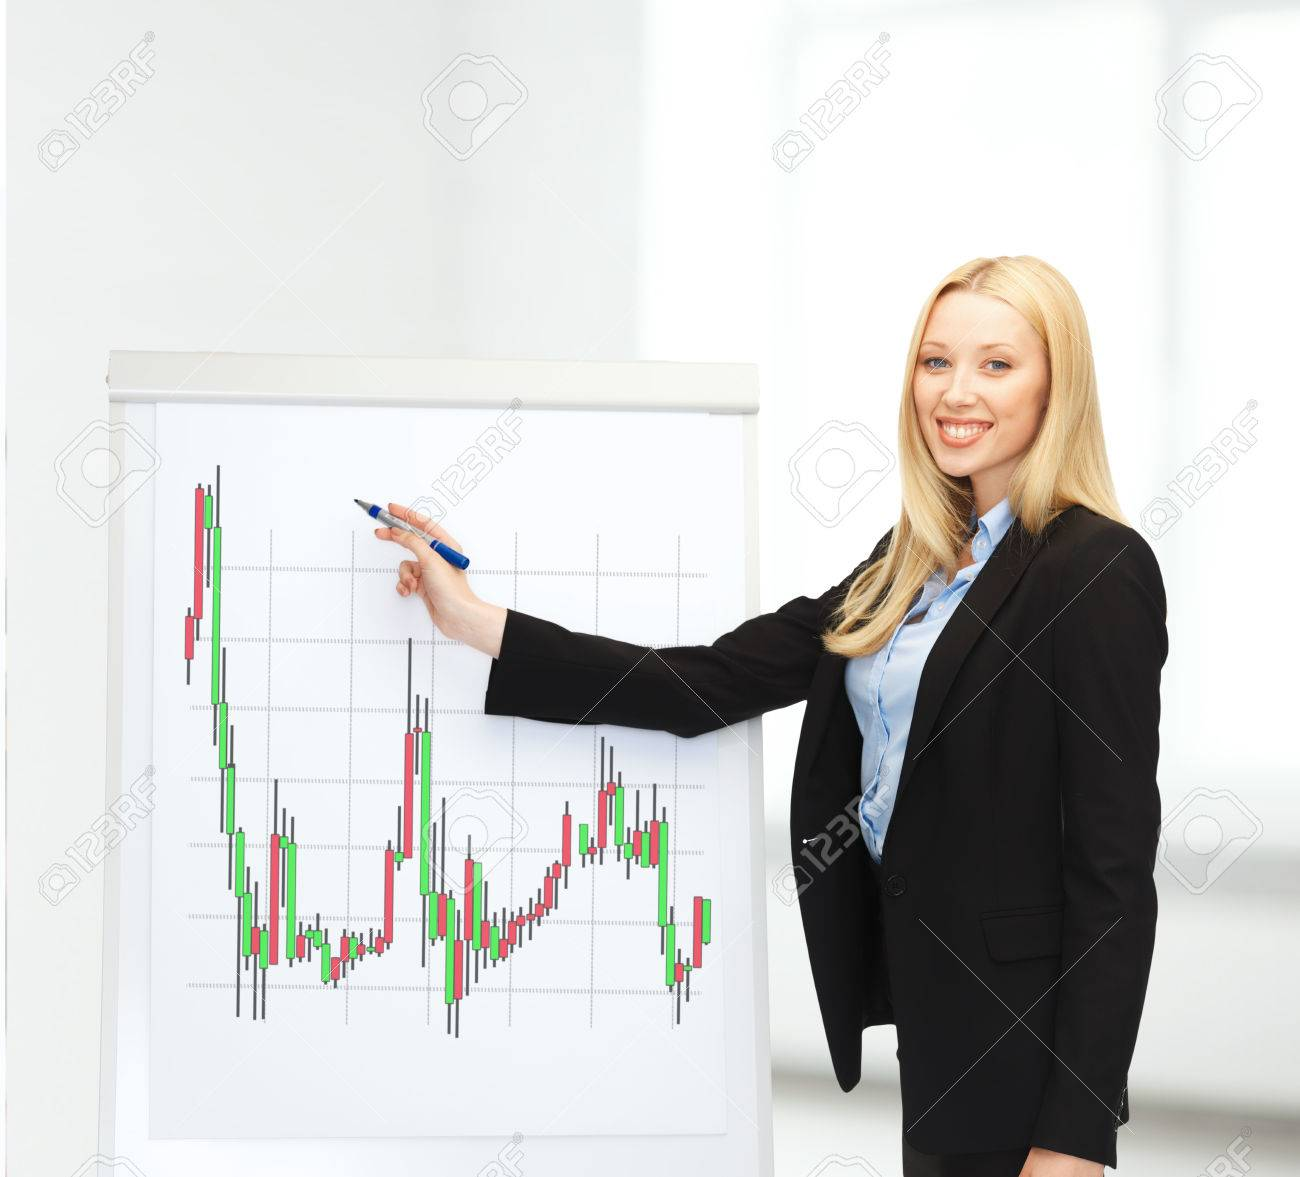 bussiness and money concept - smiling businesswoman drawing forex chart on flipboard in office Stock Photo - 24491642